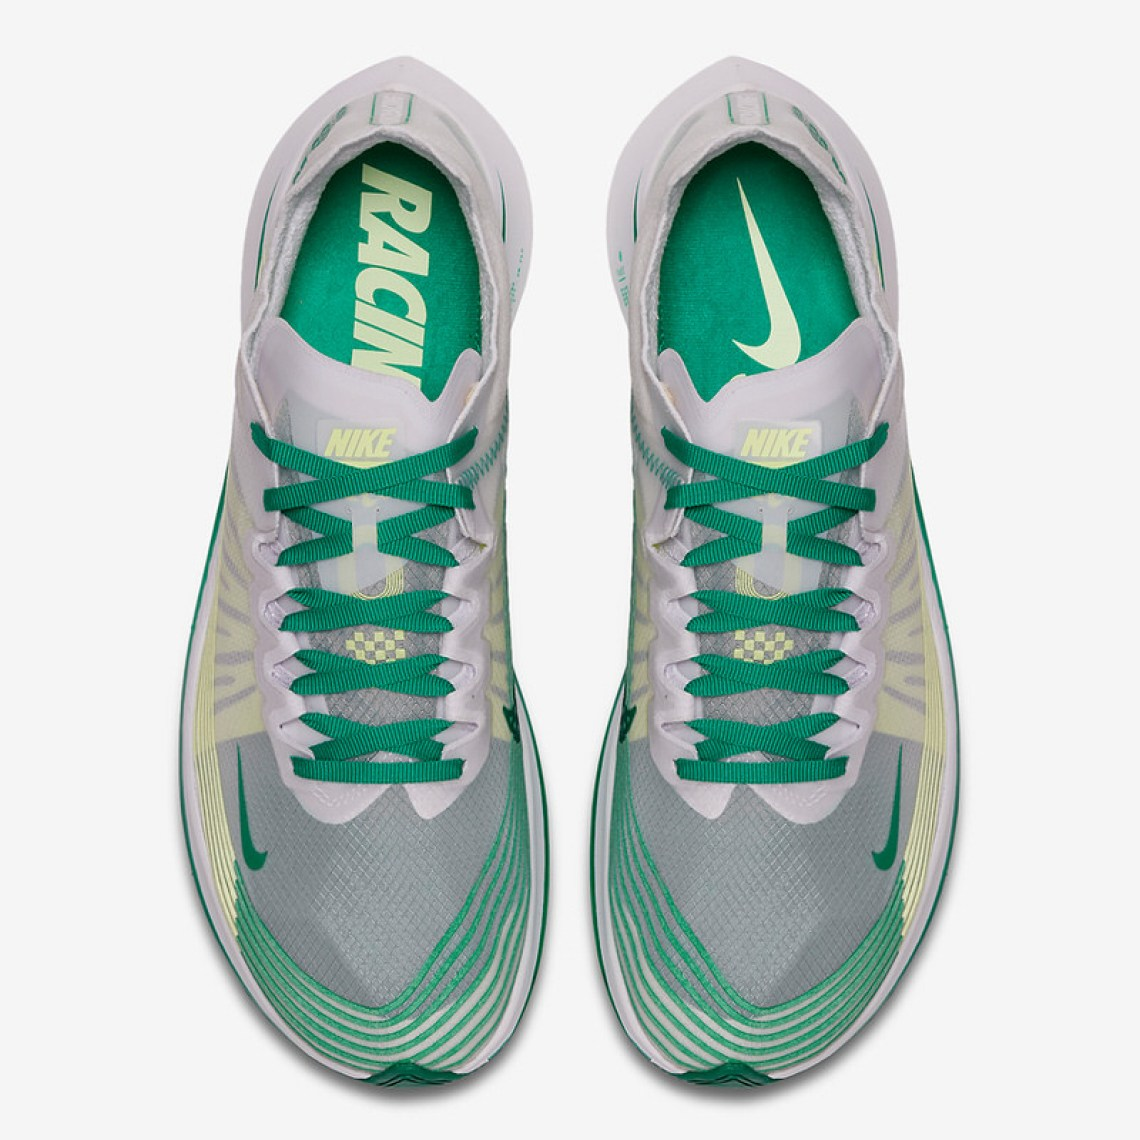 5b956b6586d8 ... Nike Zoom Fly SP